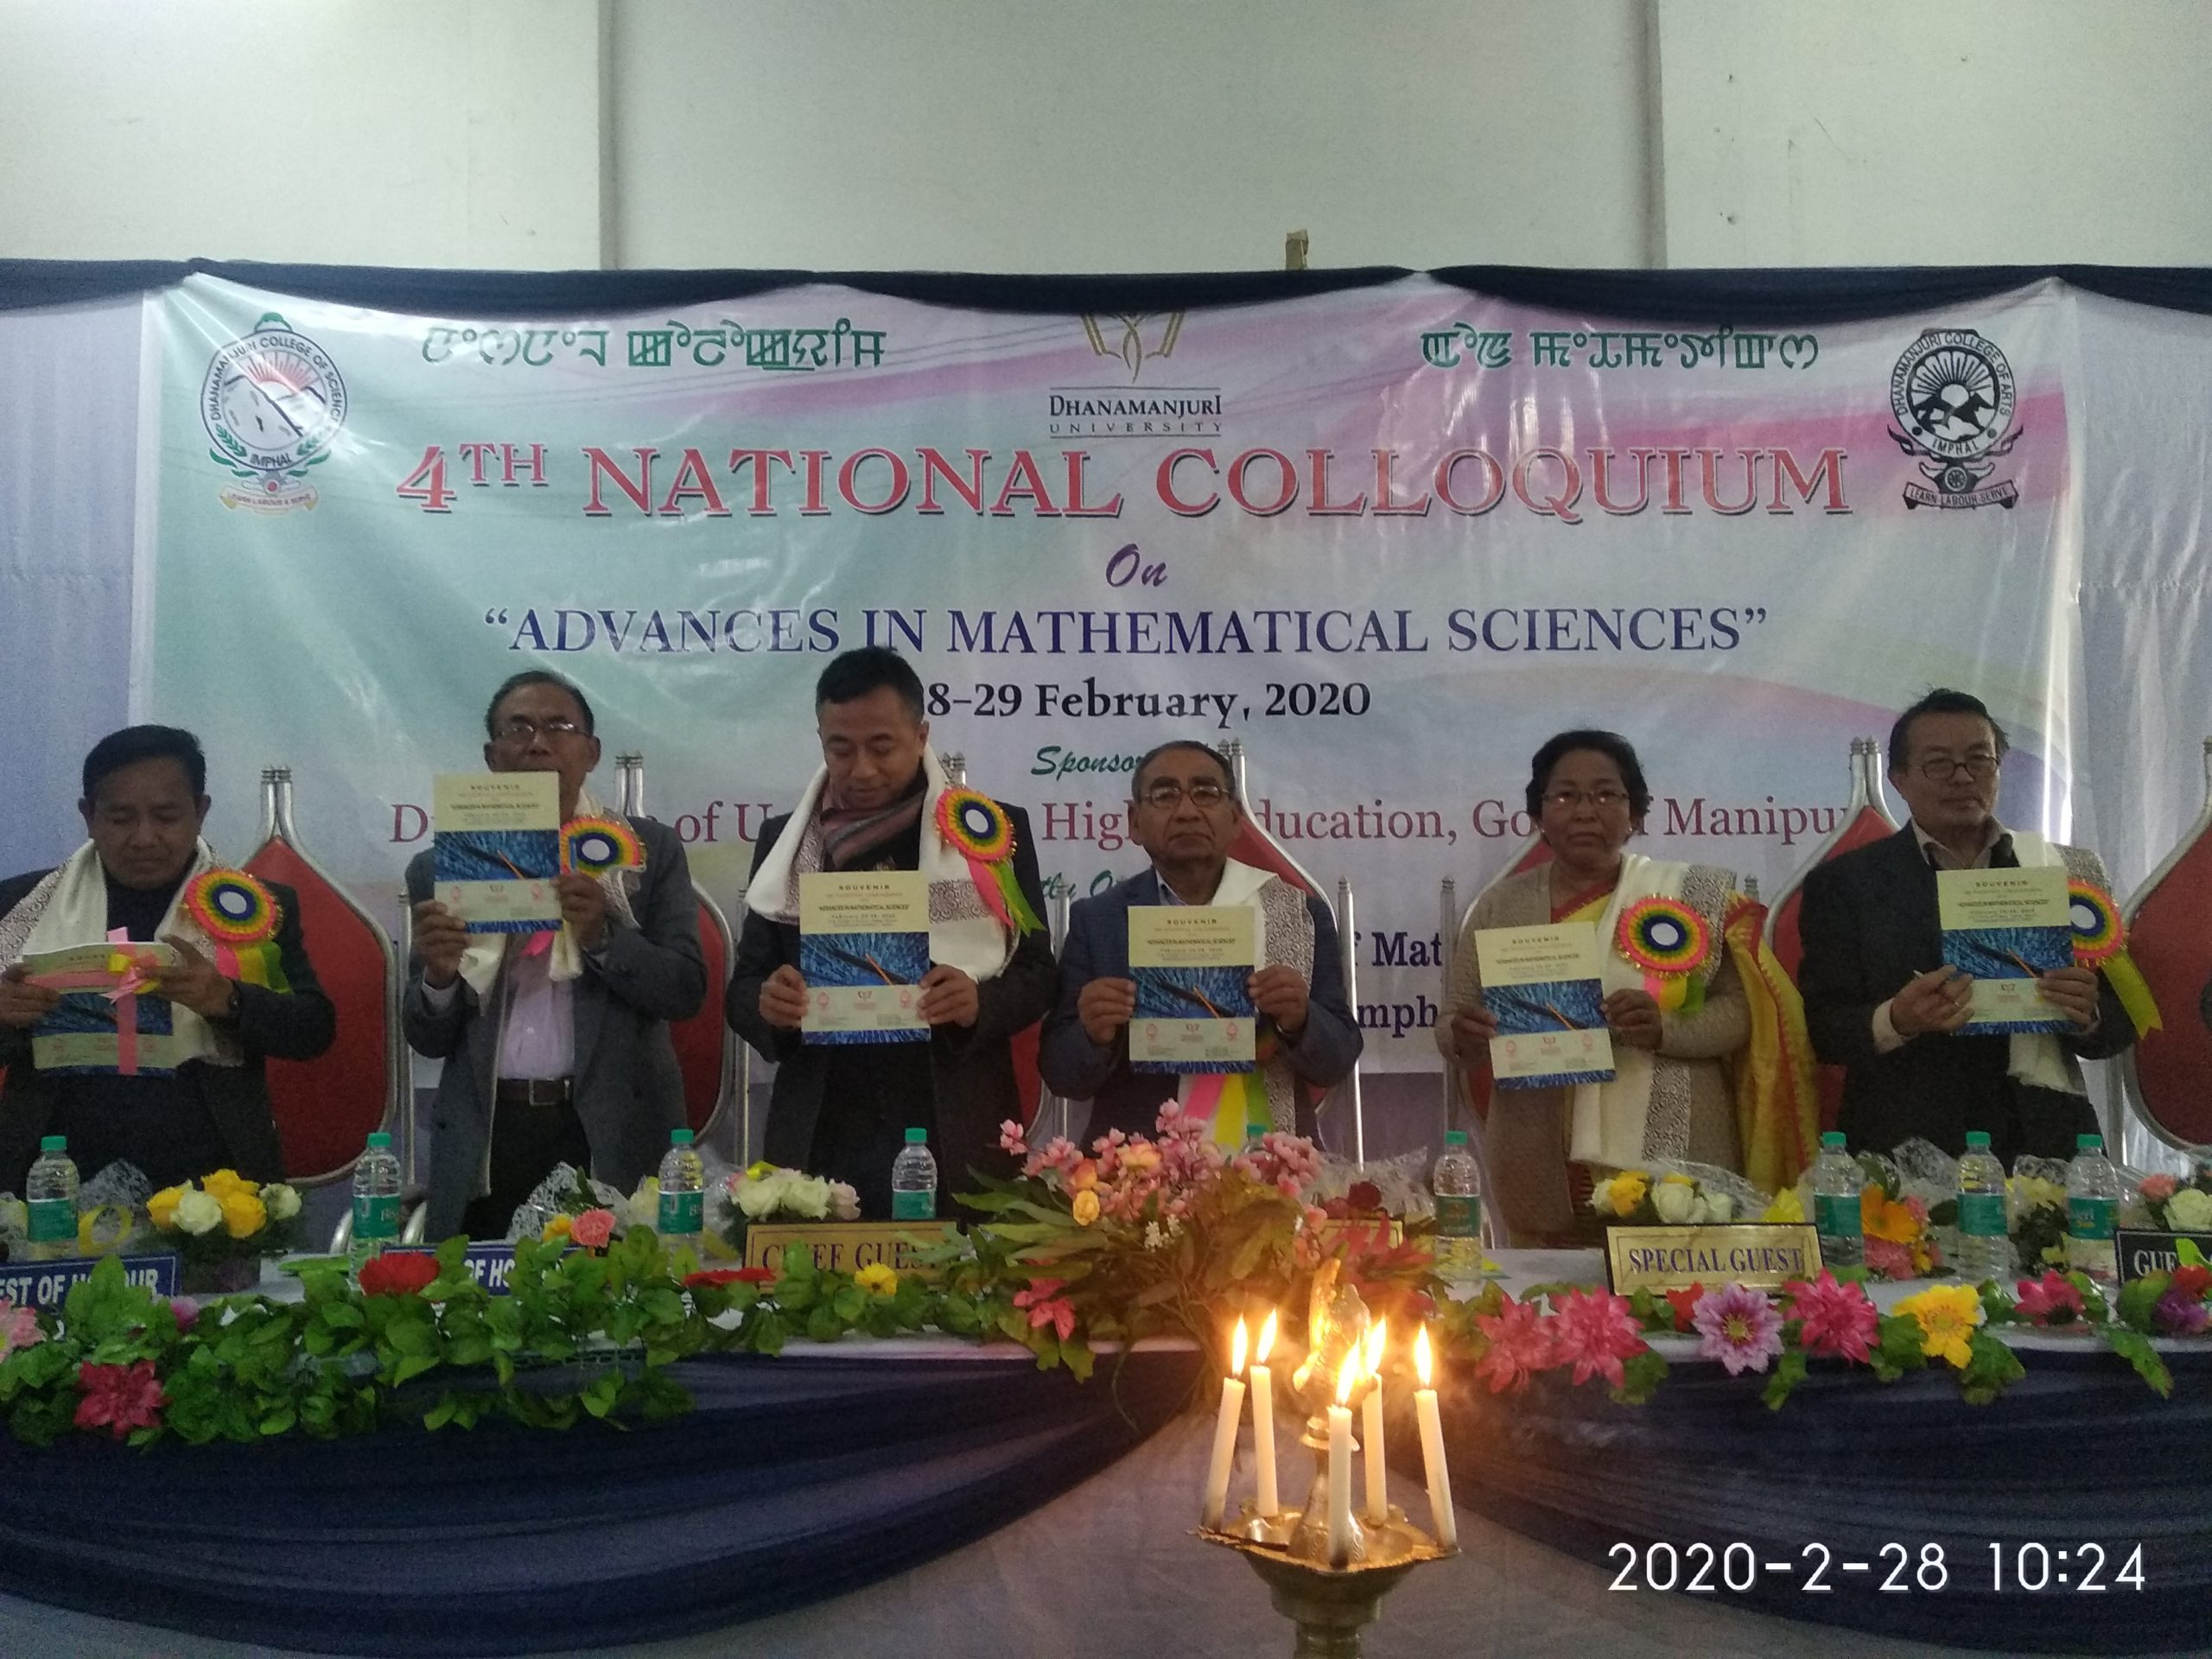 The 4th National Colloquium inaugural function held